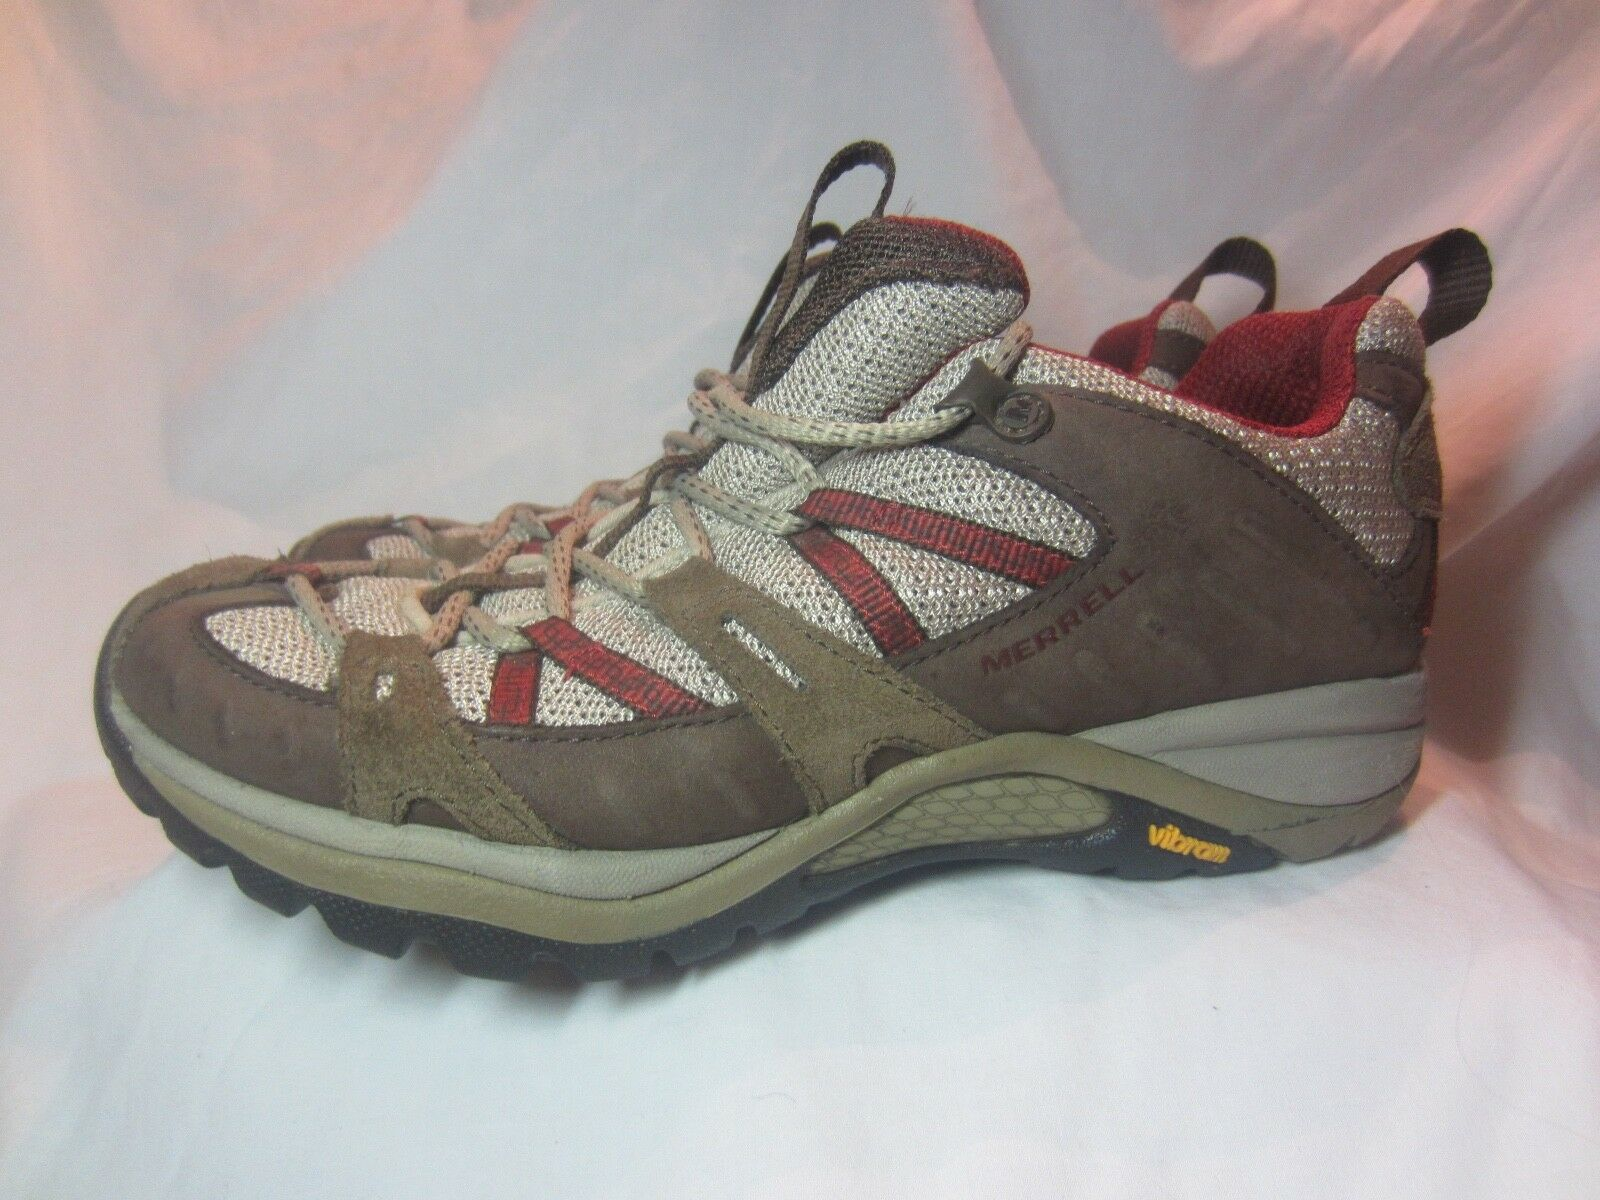 MERREL SIREN SPORT CHOCOLATE LEATHER HIKING SHOES WOMEN'S SIZE 6.5 M  J13046